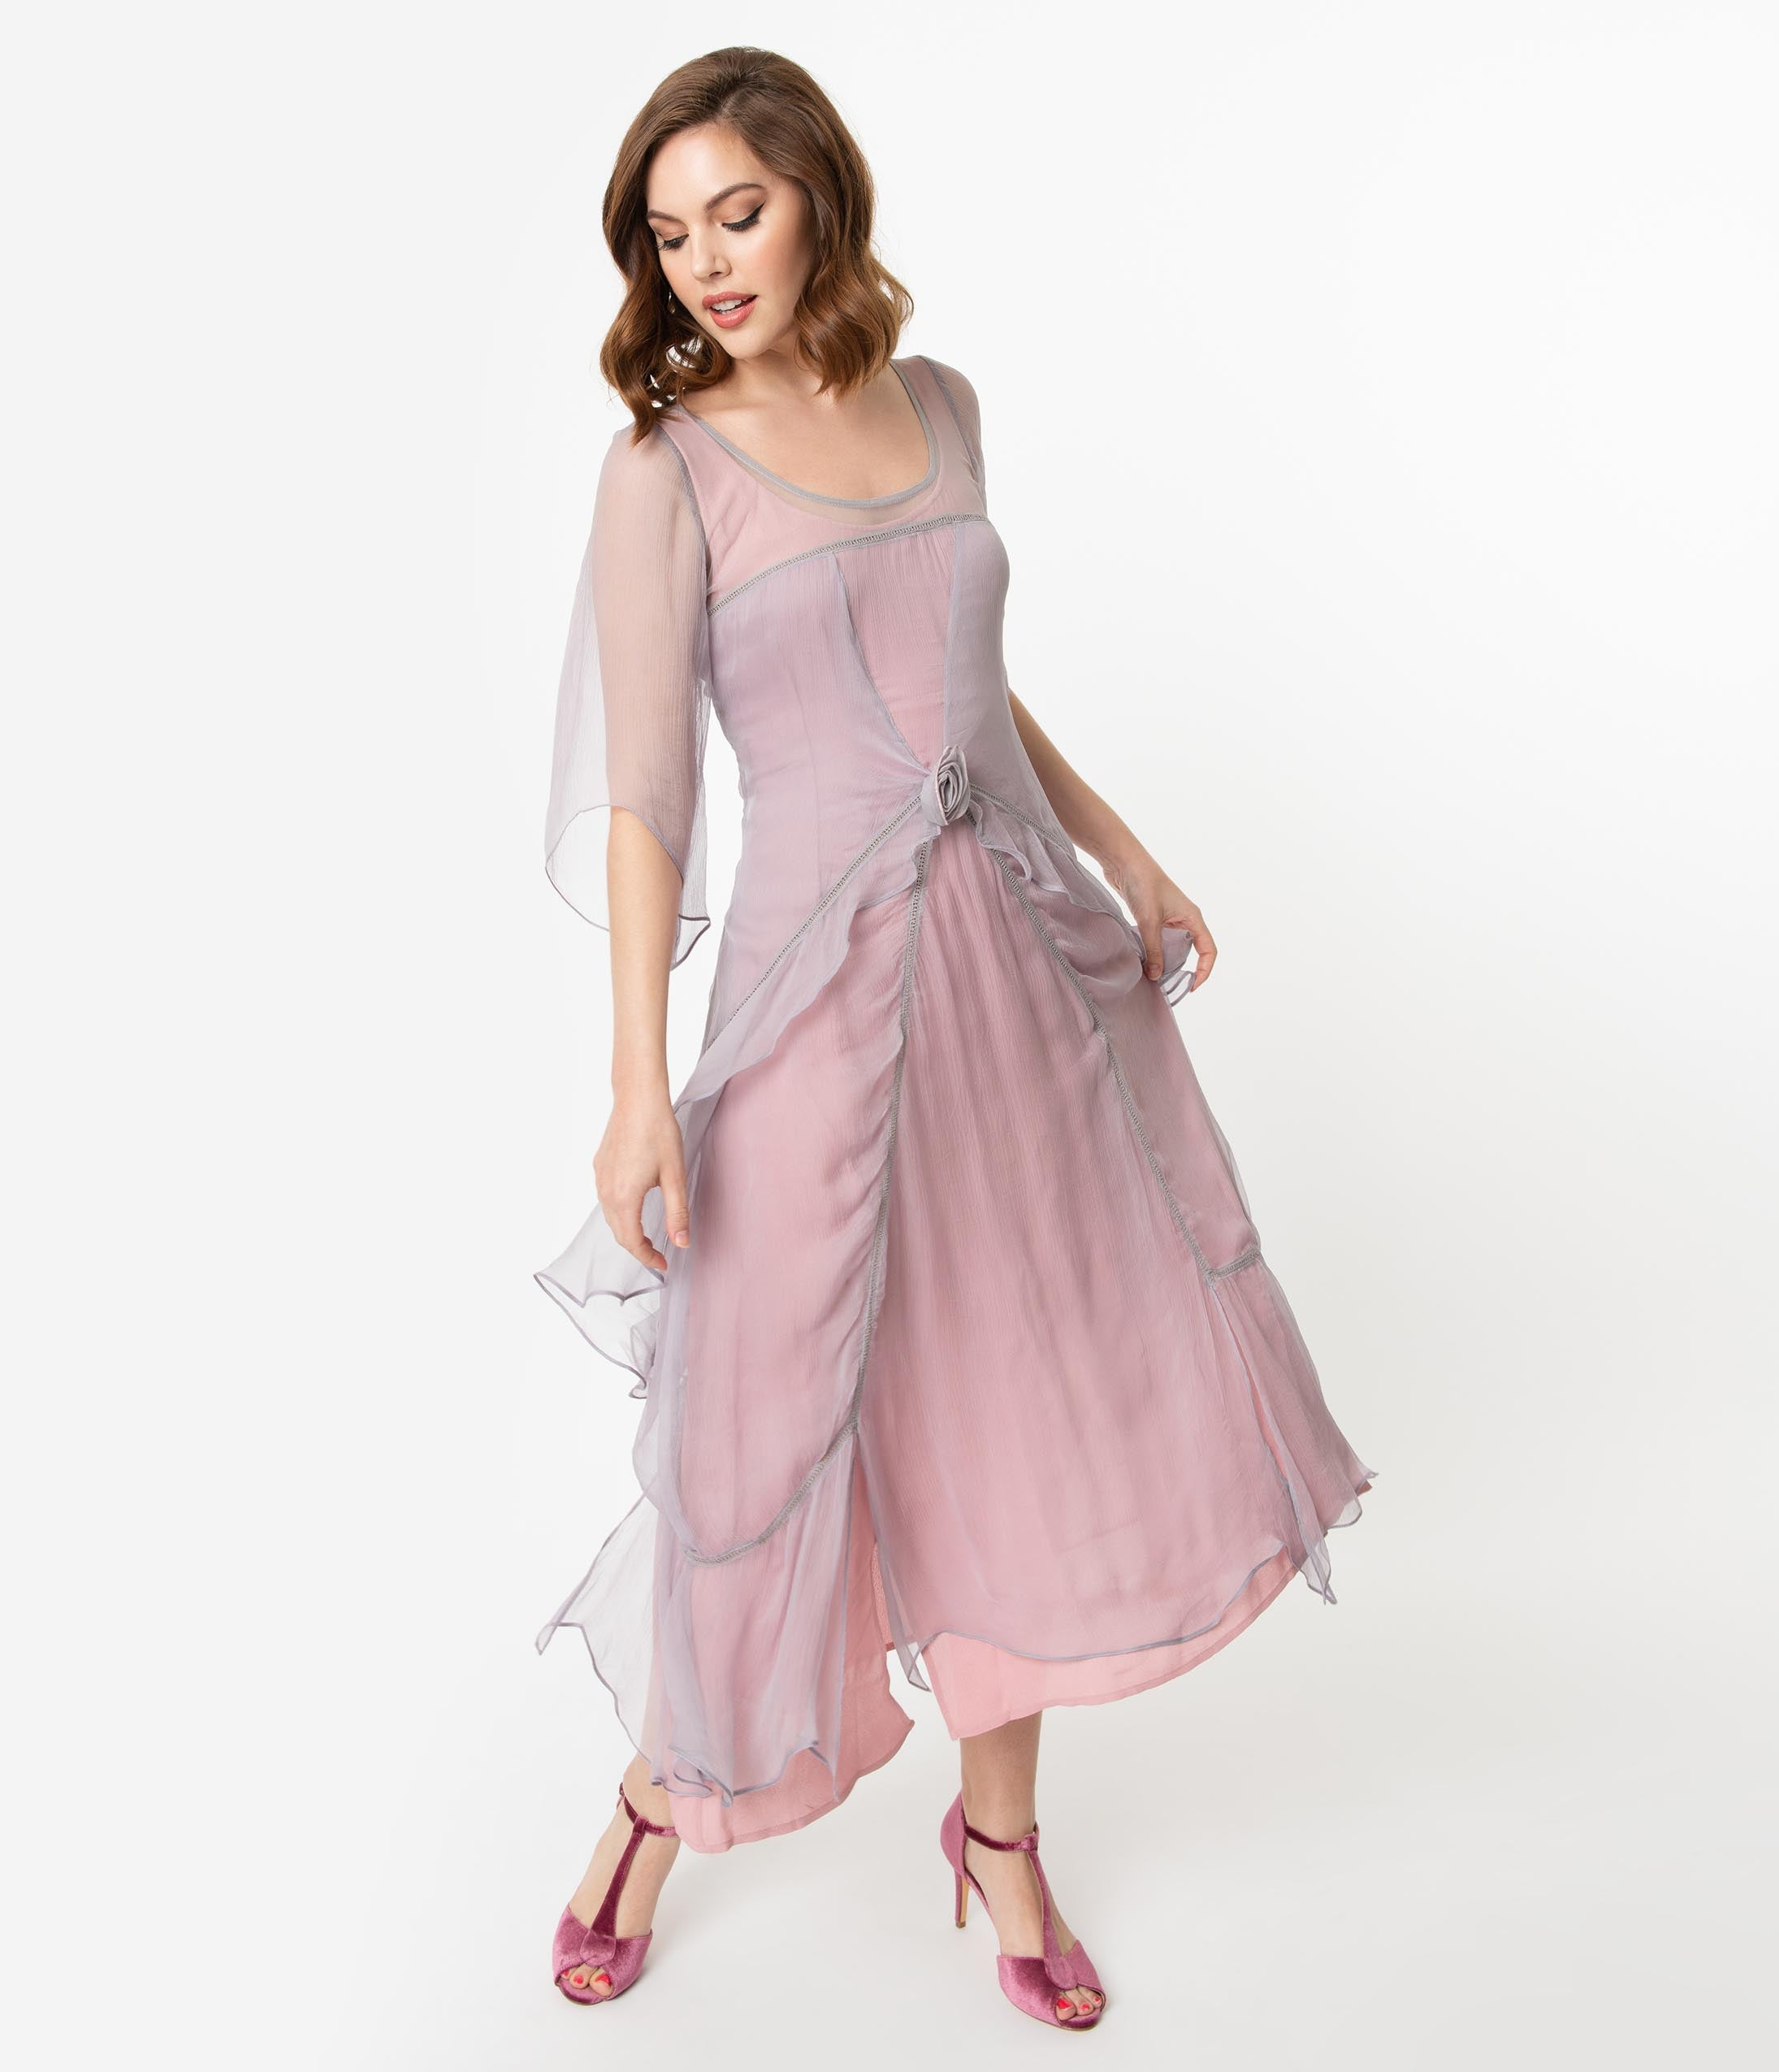 1920s Evening Dresses & Formal Gowns Vintage Style Mauve  Pink Chiffon Sleeved Edwardian Flapper Dress $242.00 AT vintagedancer.com